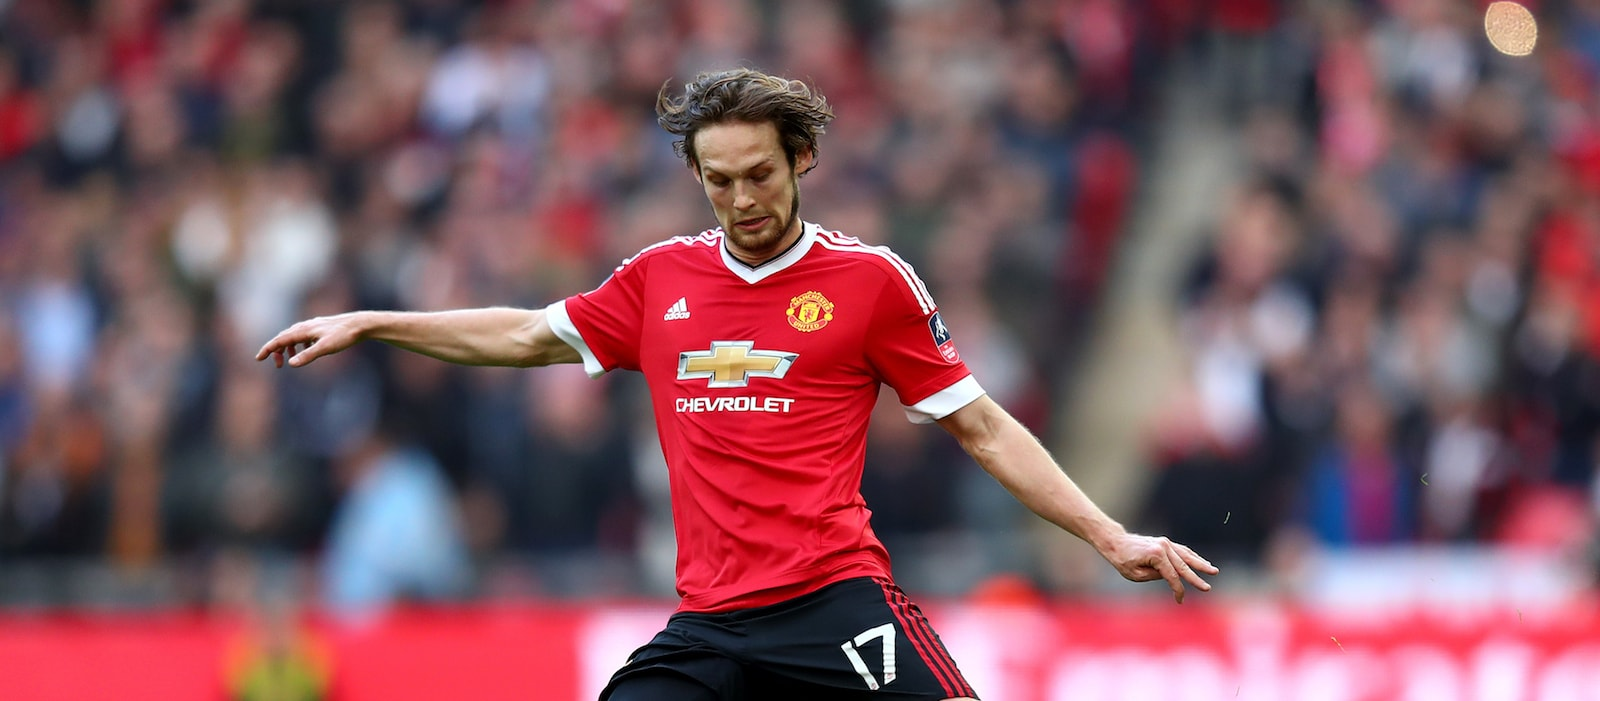 Man United fans fuming with Daley Blind's woeful defending against Chelsea